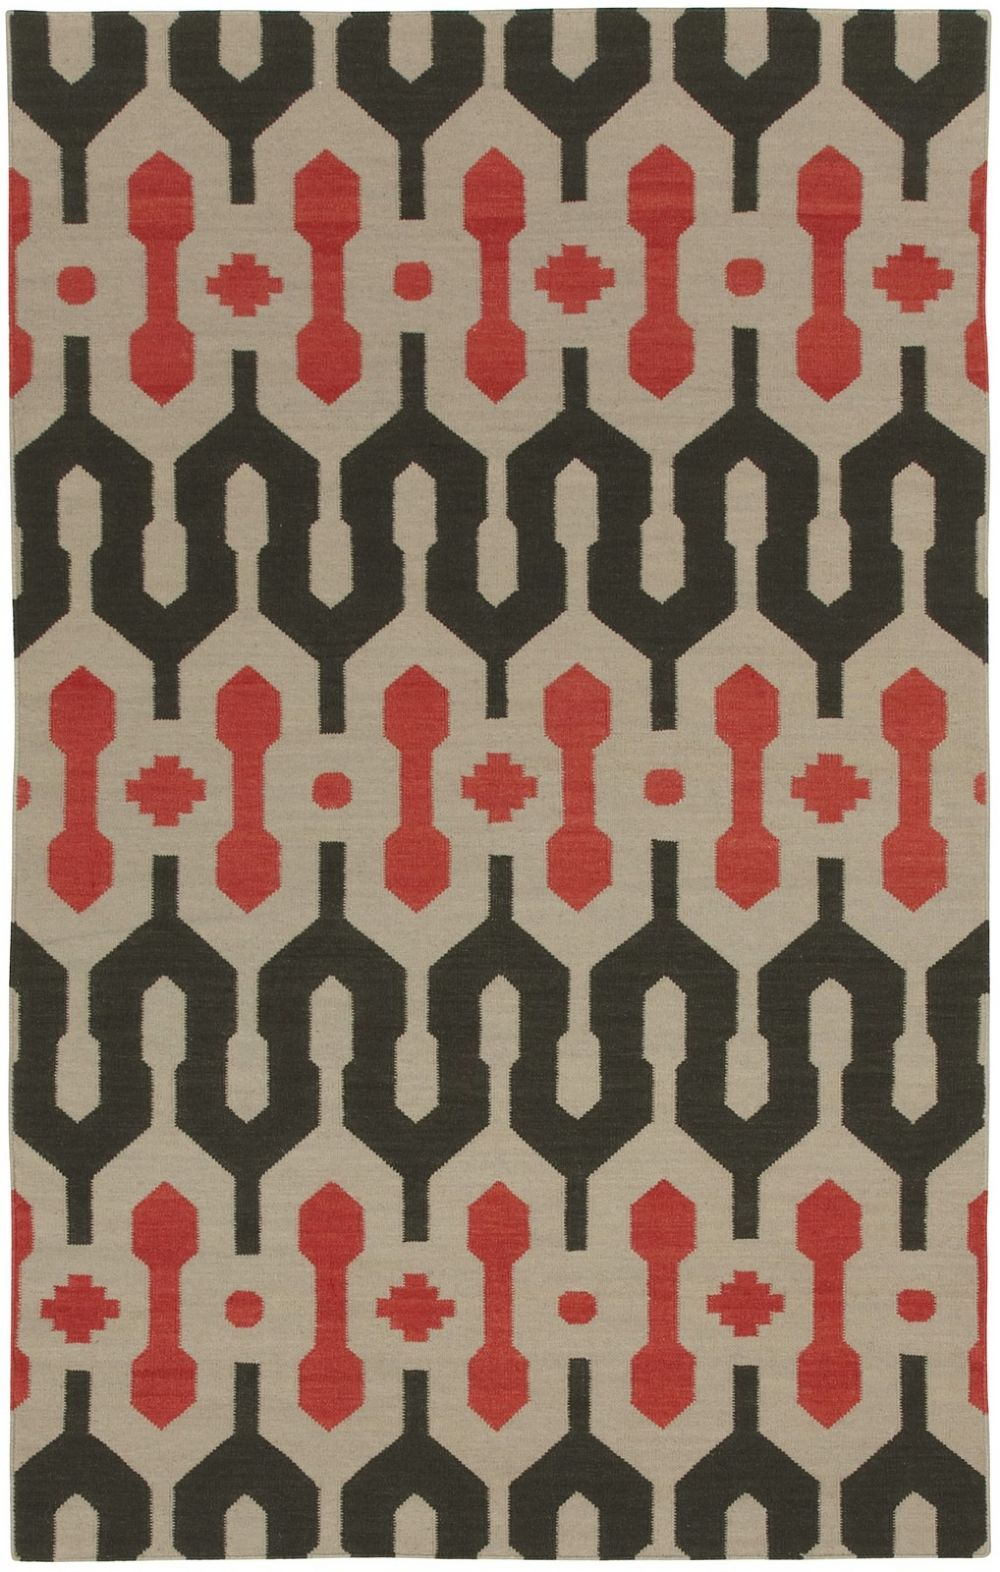 capel spain contemporary area rug collection